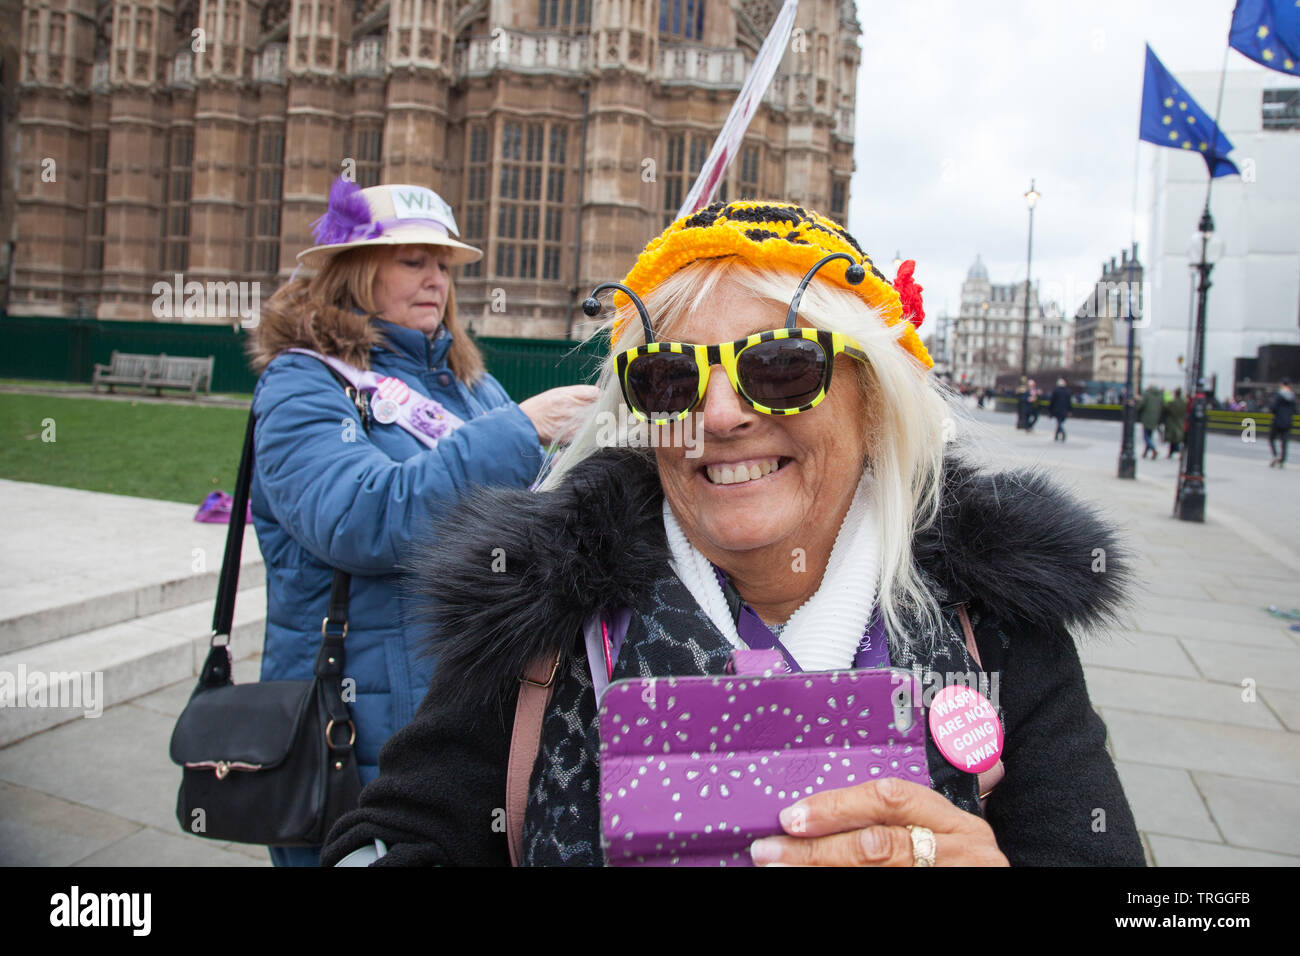 London, UK. 13 March, 2019. Protesters for the group Women Against State Pension Inequality (WASPI) gather at the House of Parliament, Westminster to express their anger at the change of the pension age for women born in 1950's. They call on the government to provide compensation for the millions of women affected by the change. Stock Photo